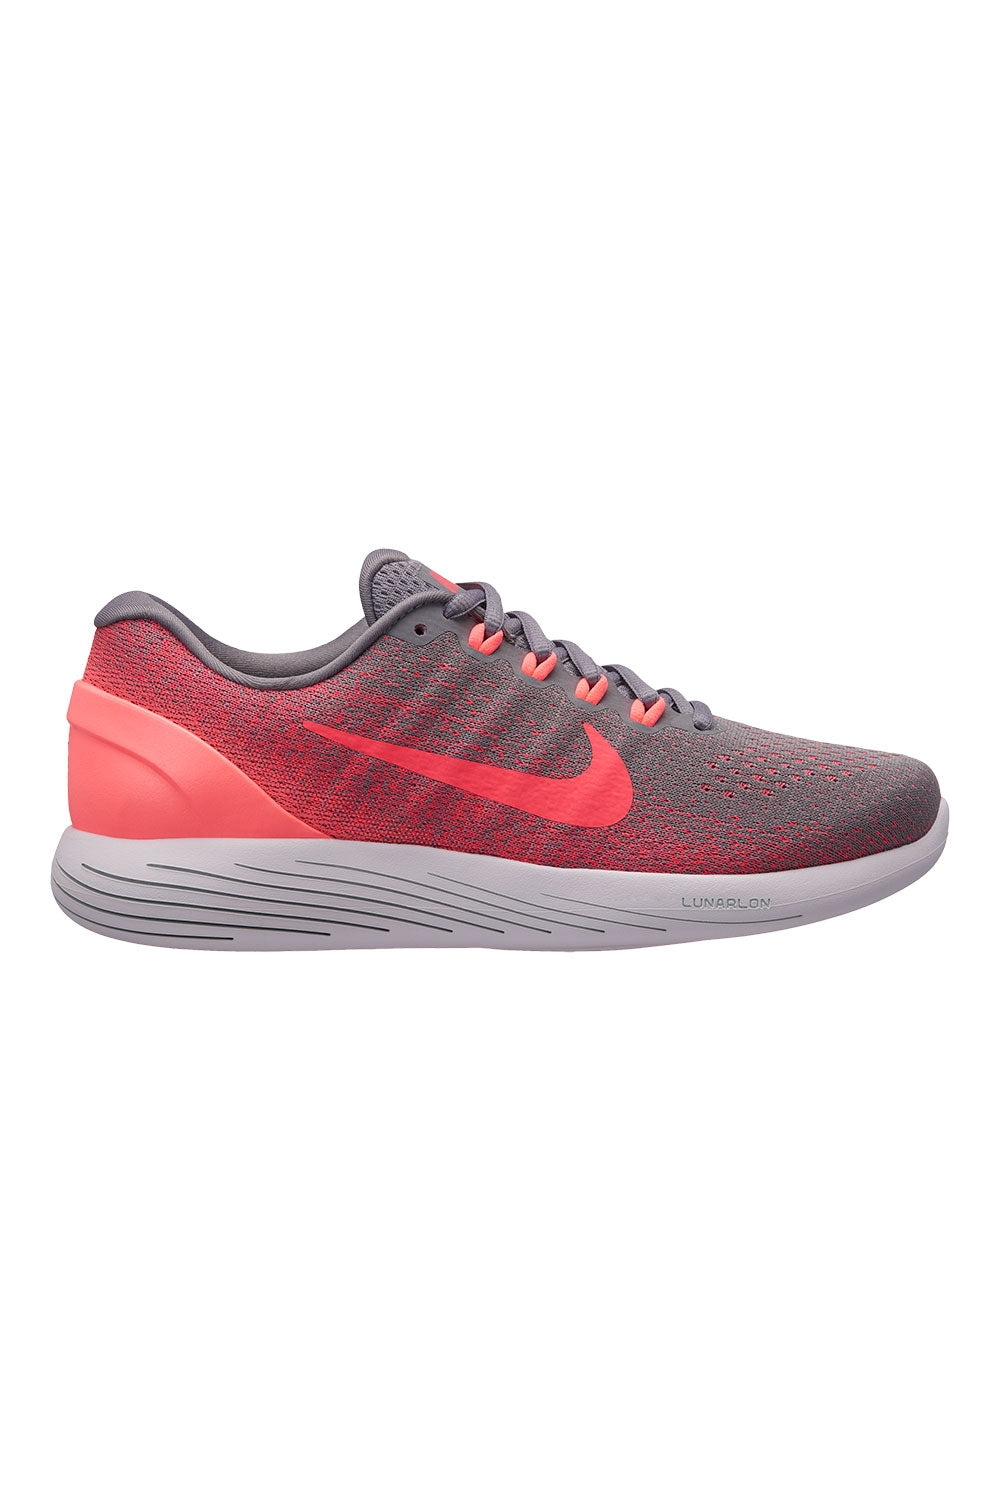 da45206c86eb7 Women s LunarGlide 9 by Nike at Gazelle Sports